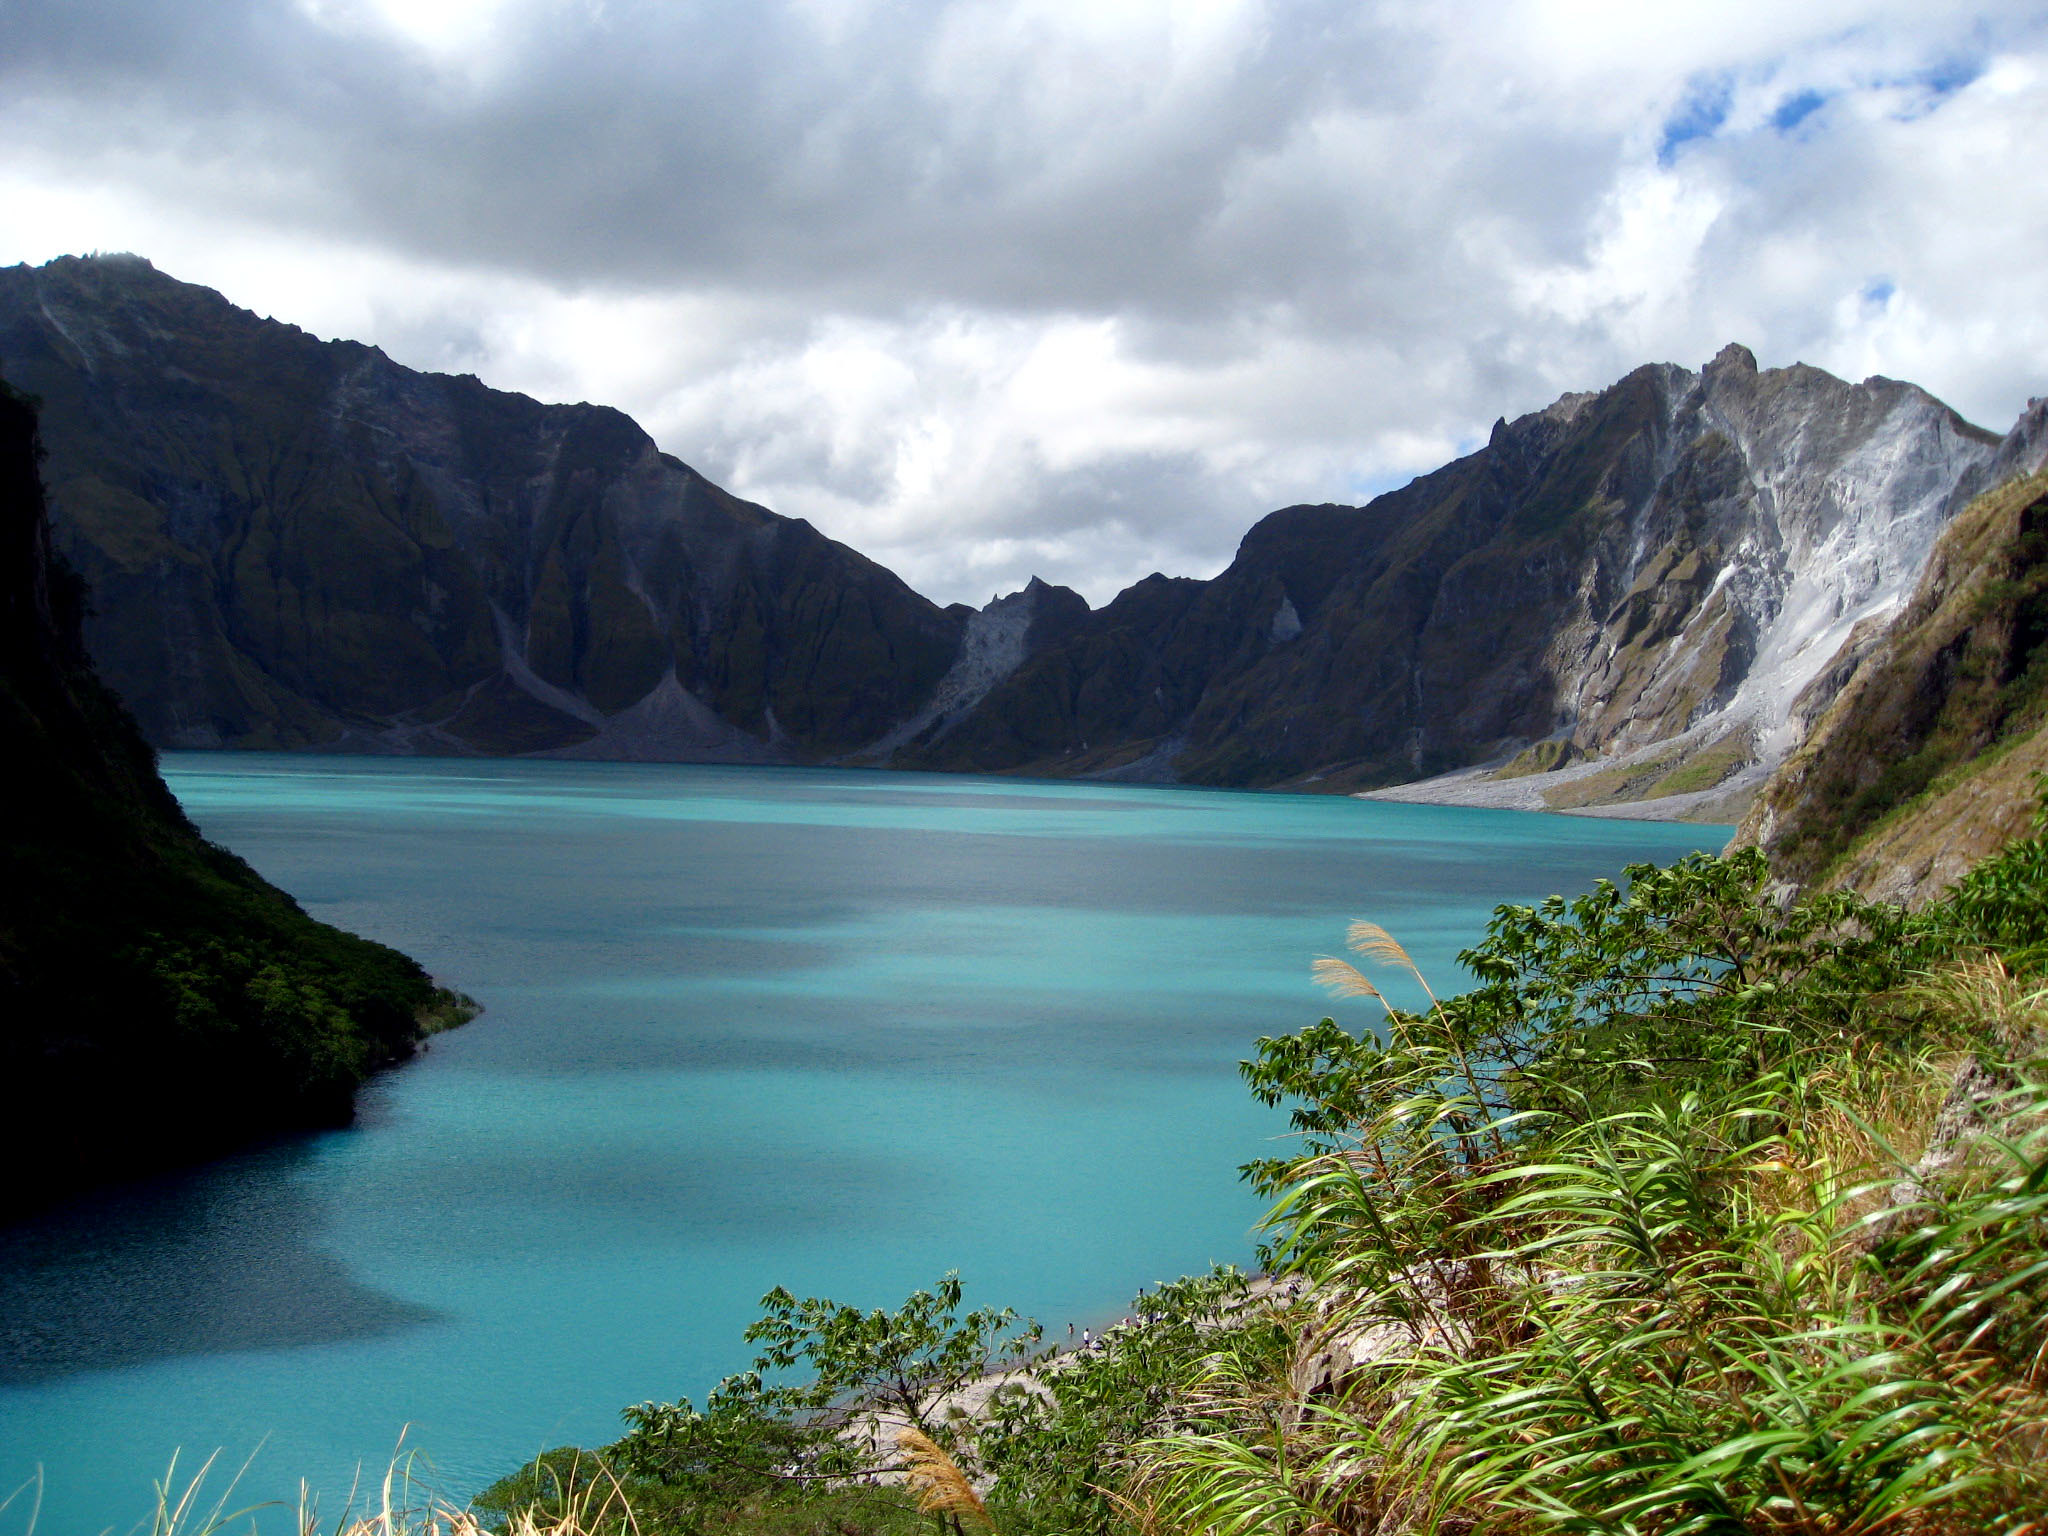 List of Best Volcano destinations in the Philippines1